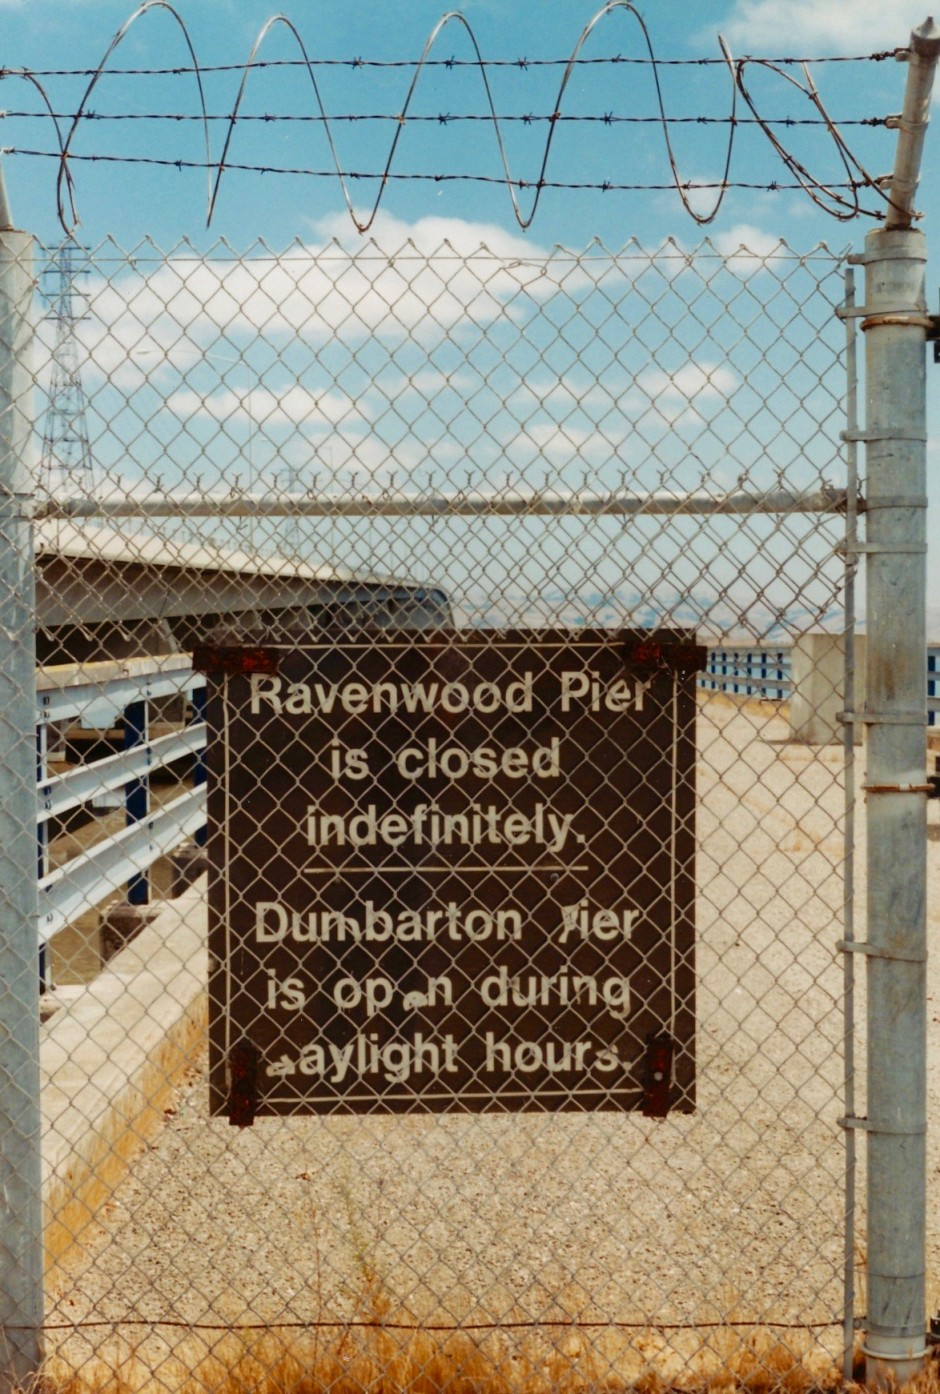 Ravenswood.Pier.3_Closed